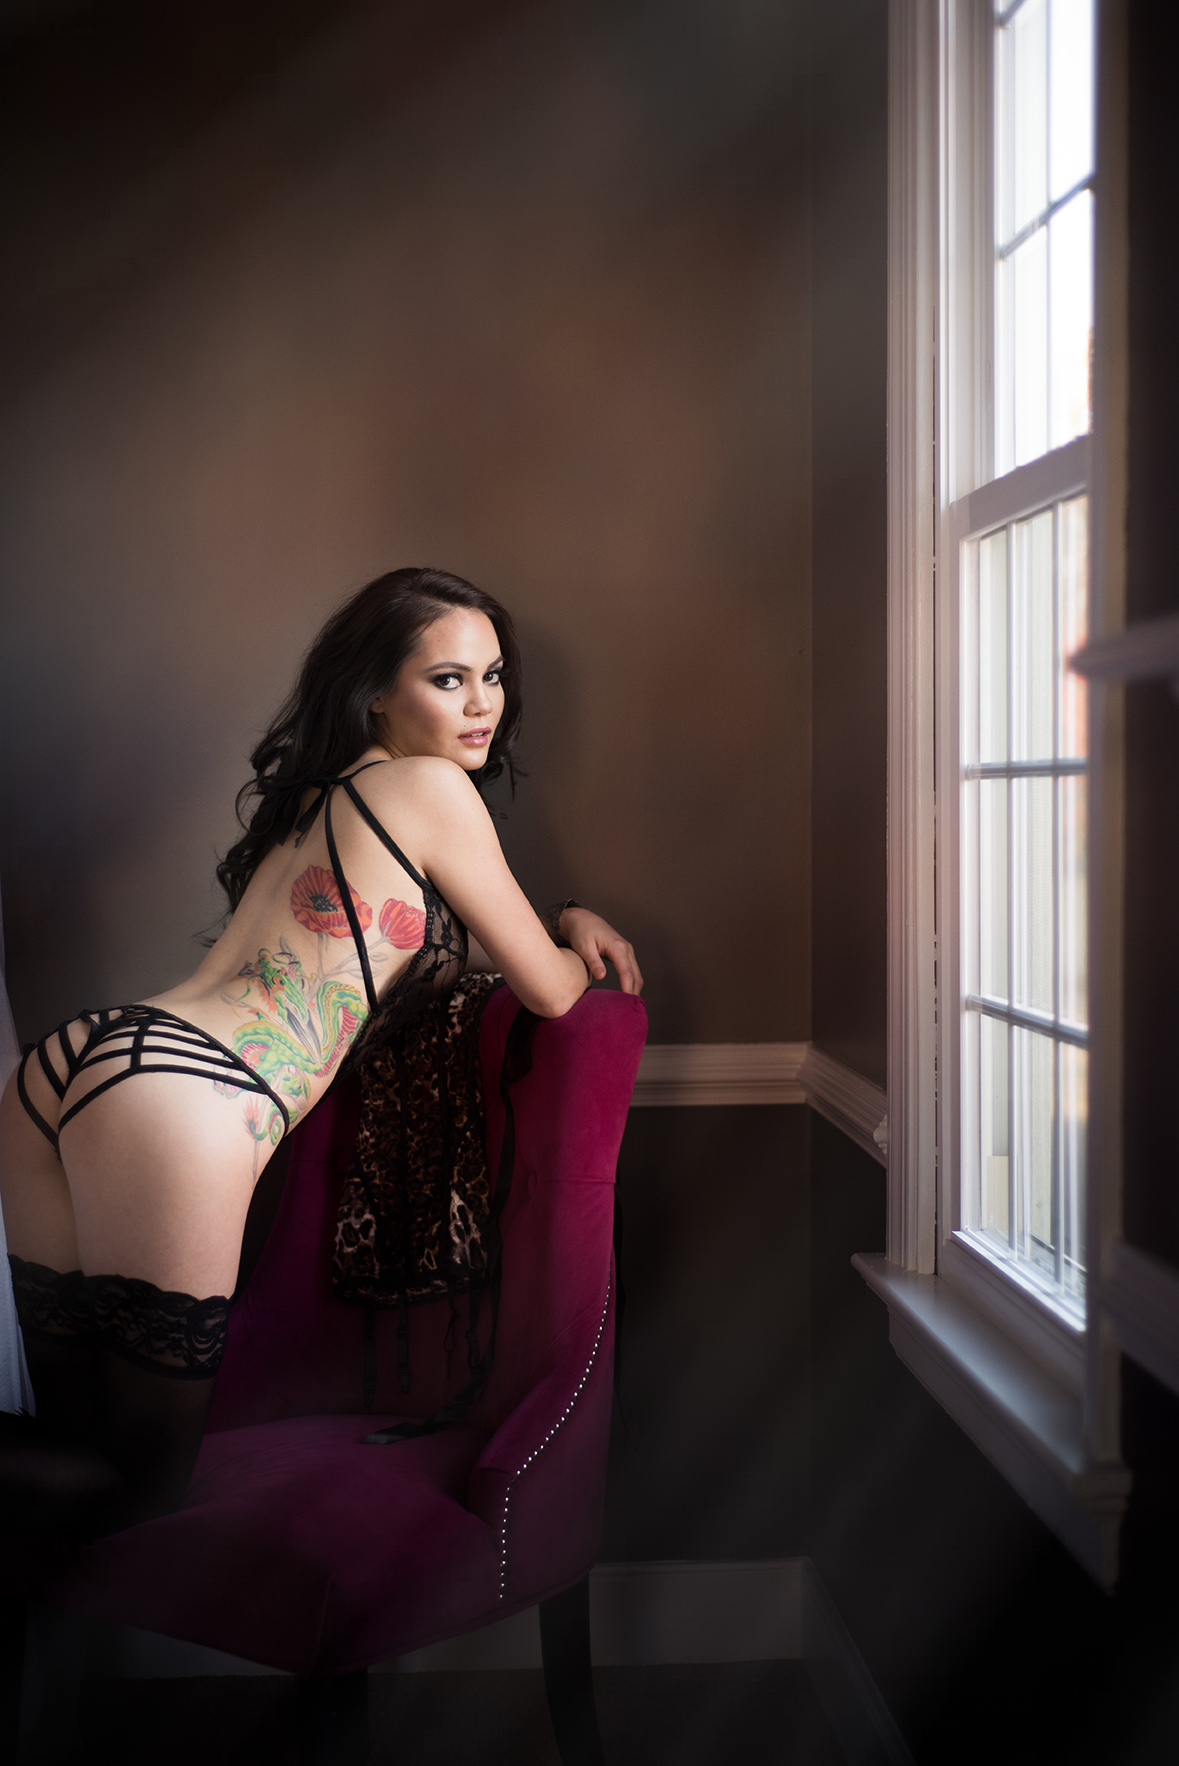 Professional boudoir and portrait photography in Richmond, VA